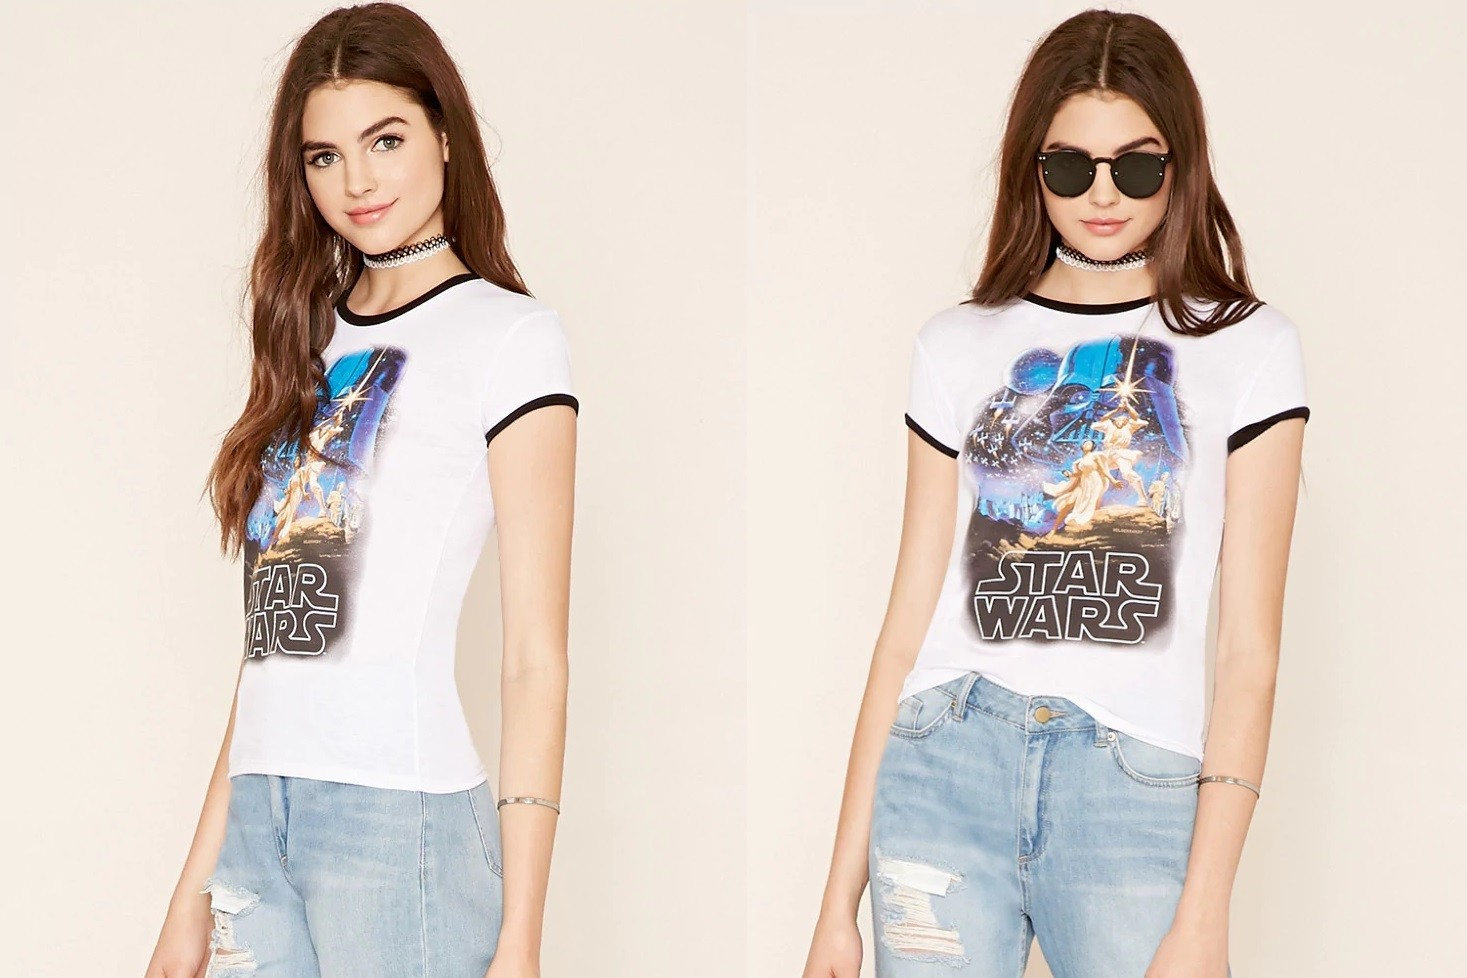 Star Wars graphic tee at Forever 21